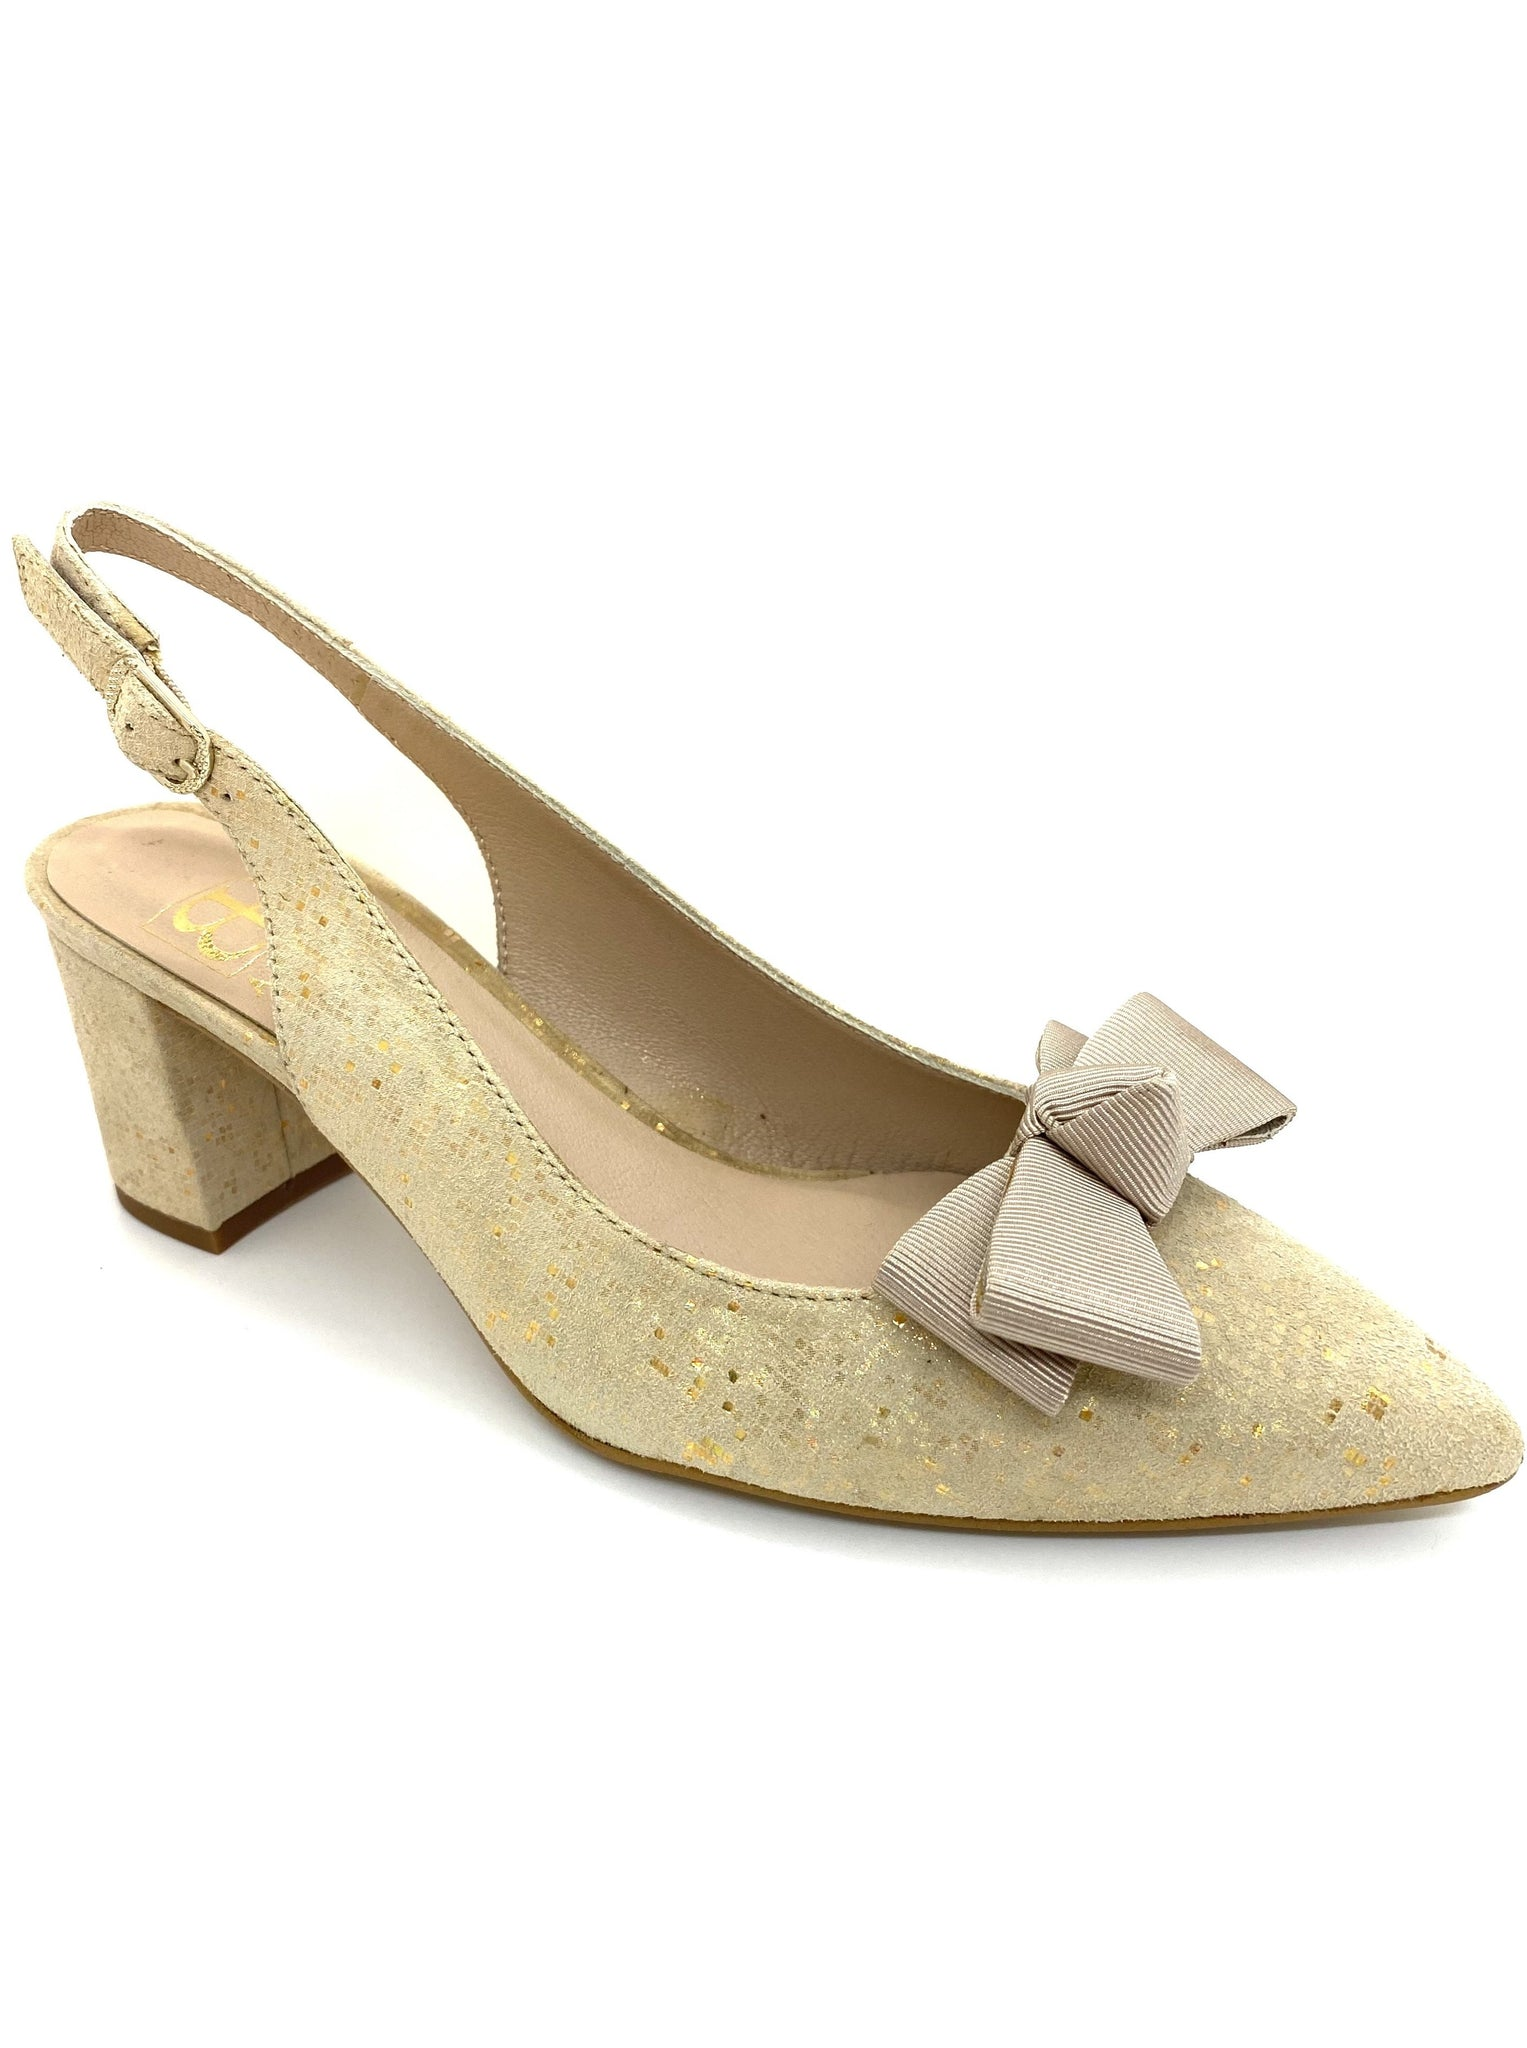 Oregon Mid Heel Slingback Shoe With Ribbon Bow Trim